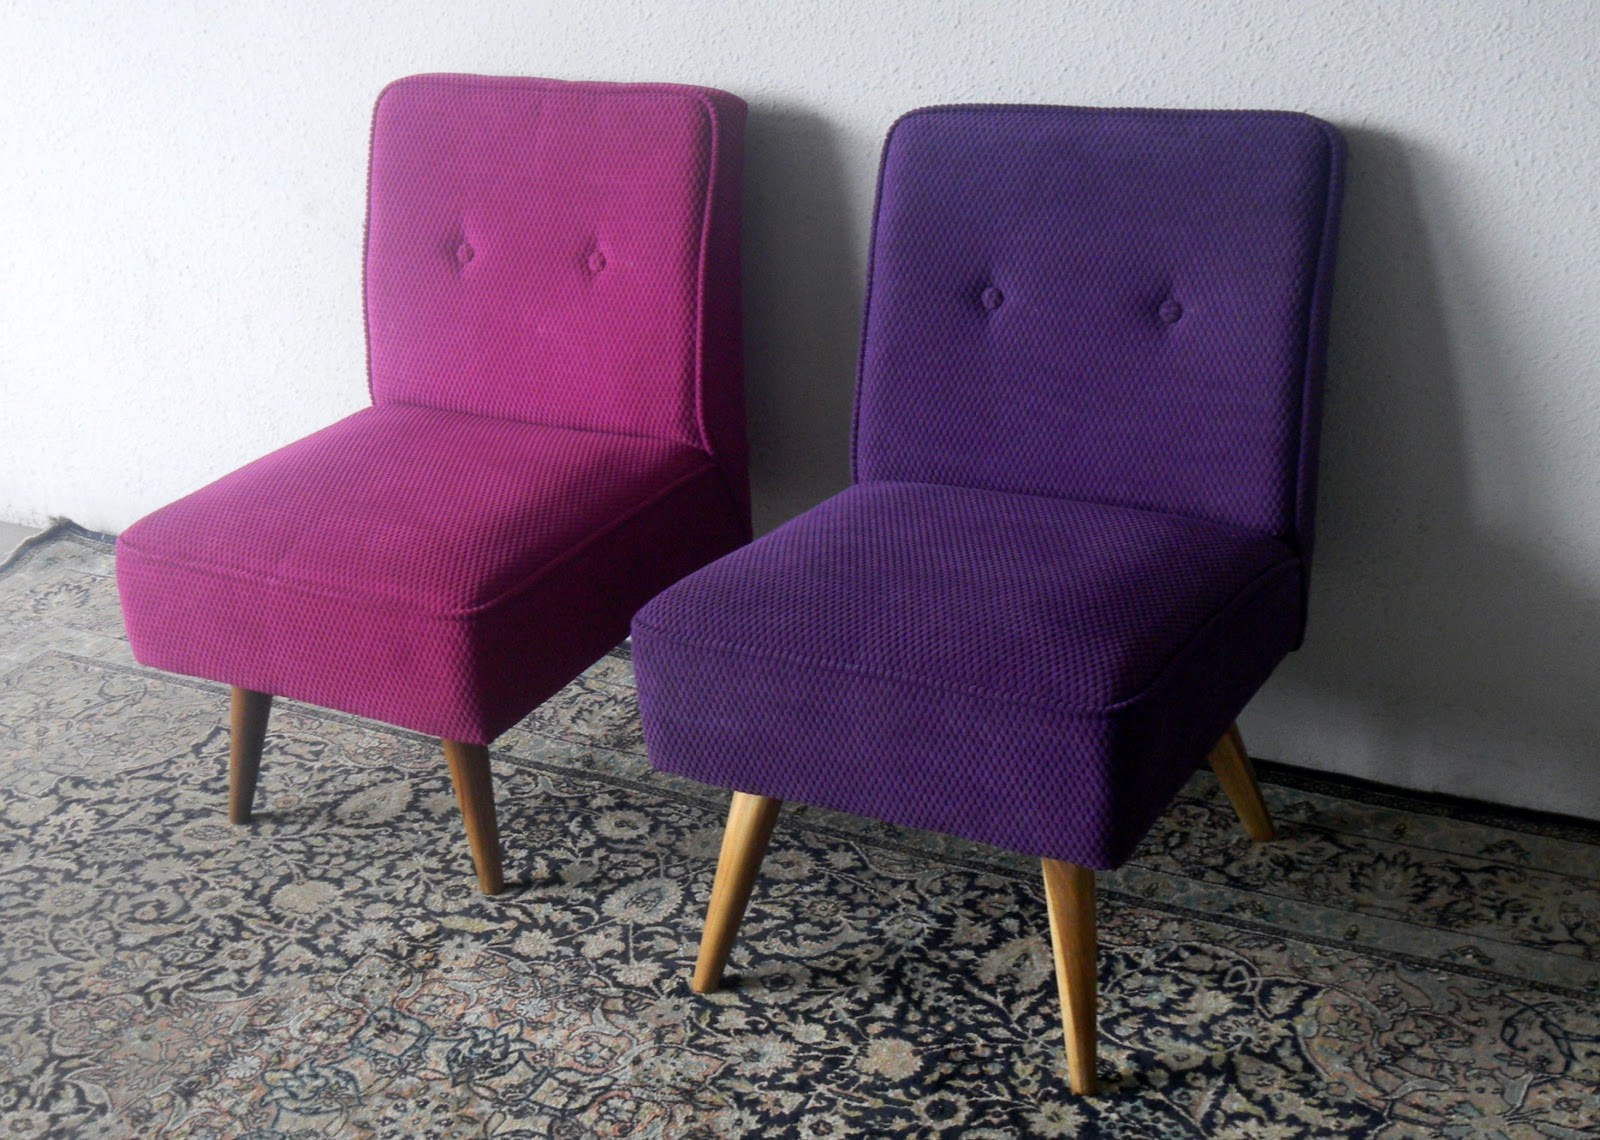 Vintage armless chairs - Mid Century Modern Sofas And Armchairs As Vintage Interiors